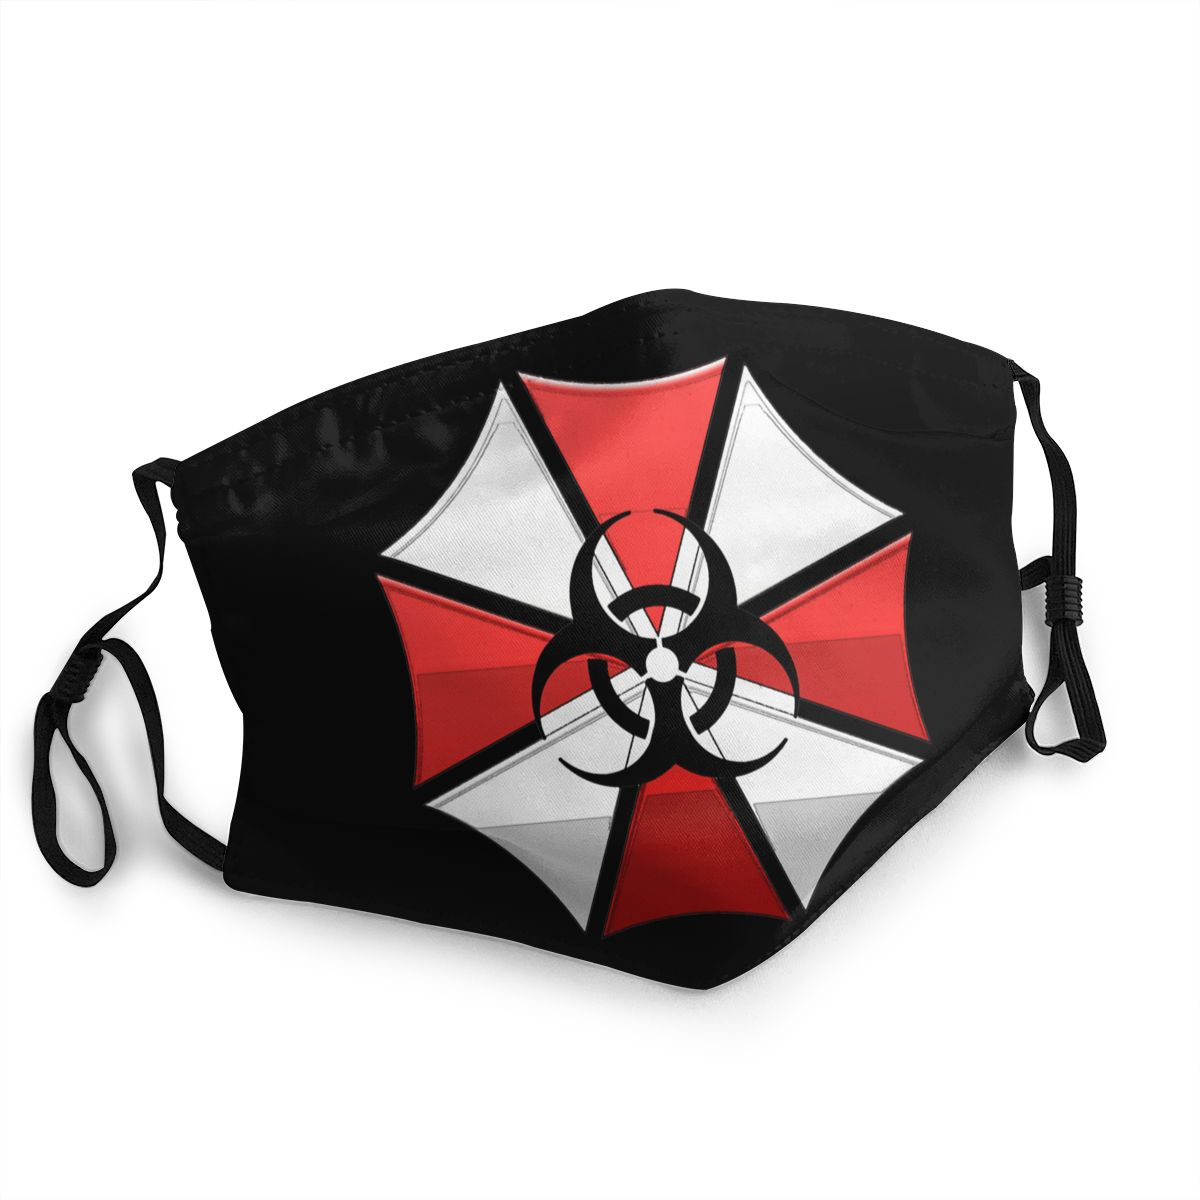 Umbrella Corp Mask Cute Anti-bacterial Dust Residented Evil Mouth Mask